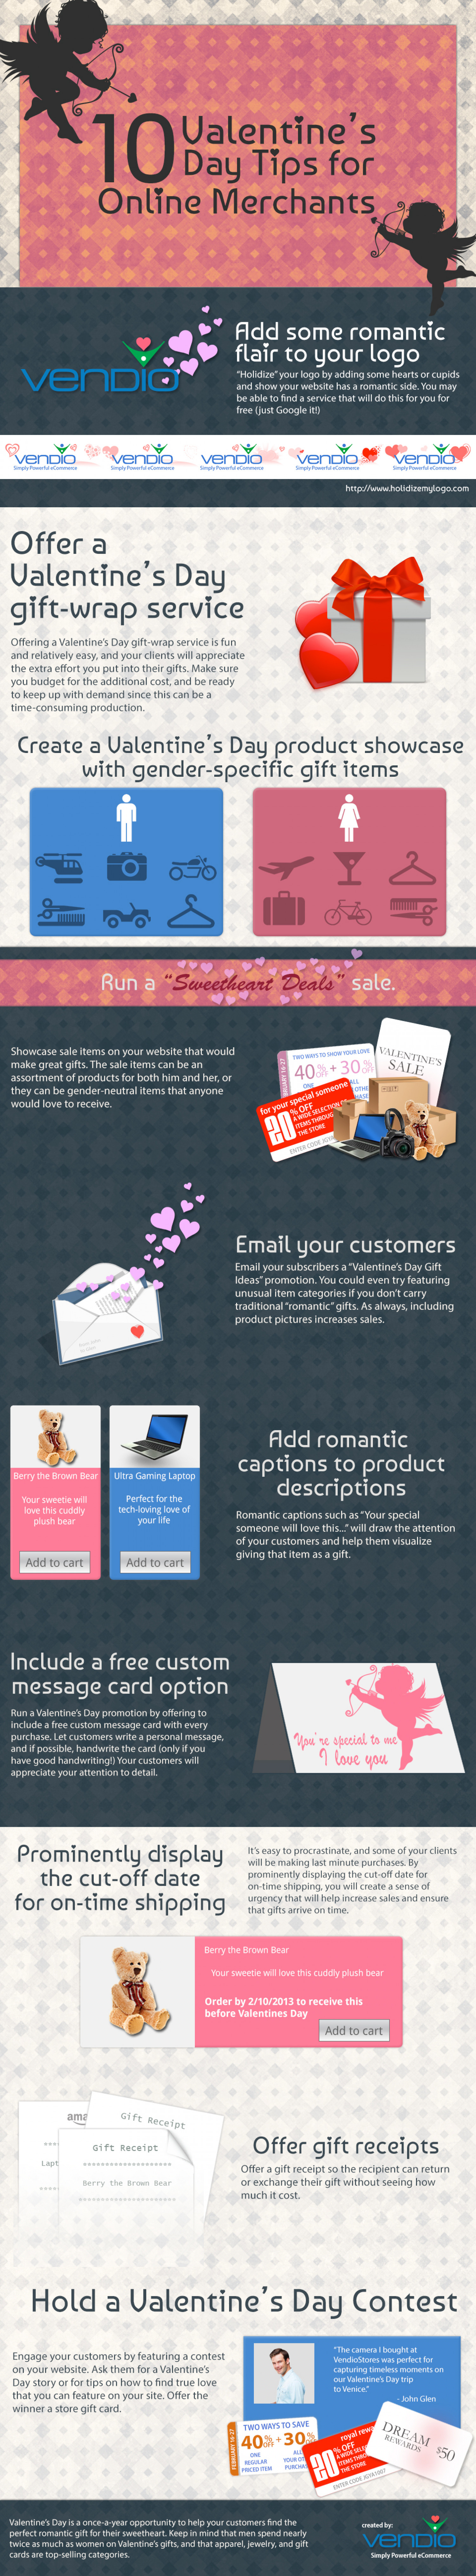 10 Valentine's Day Tips for Ecommerce SMB Merchants Infographic